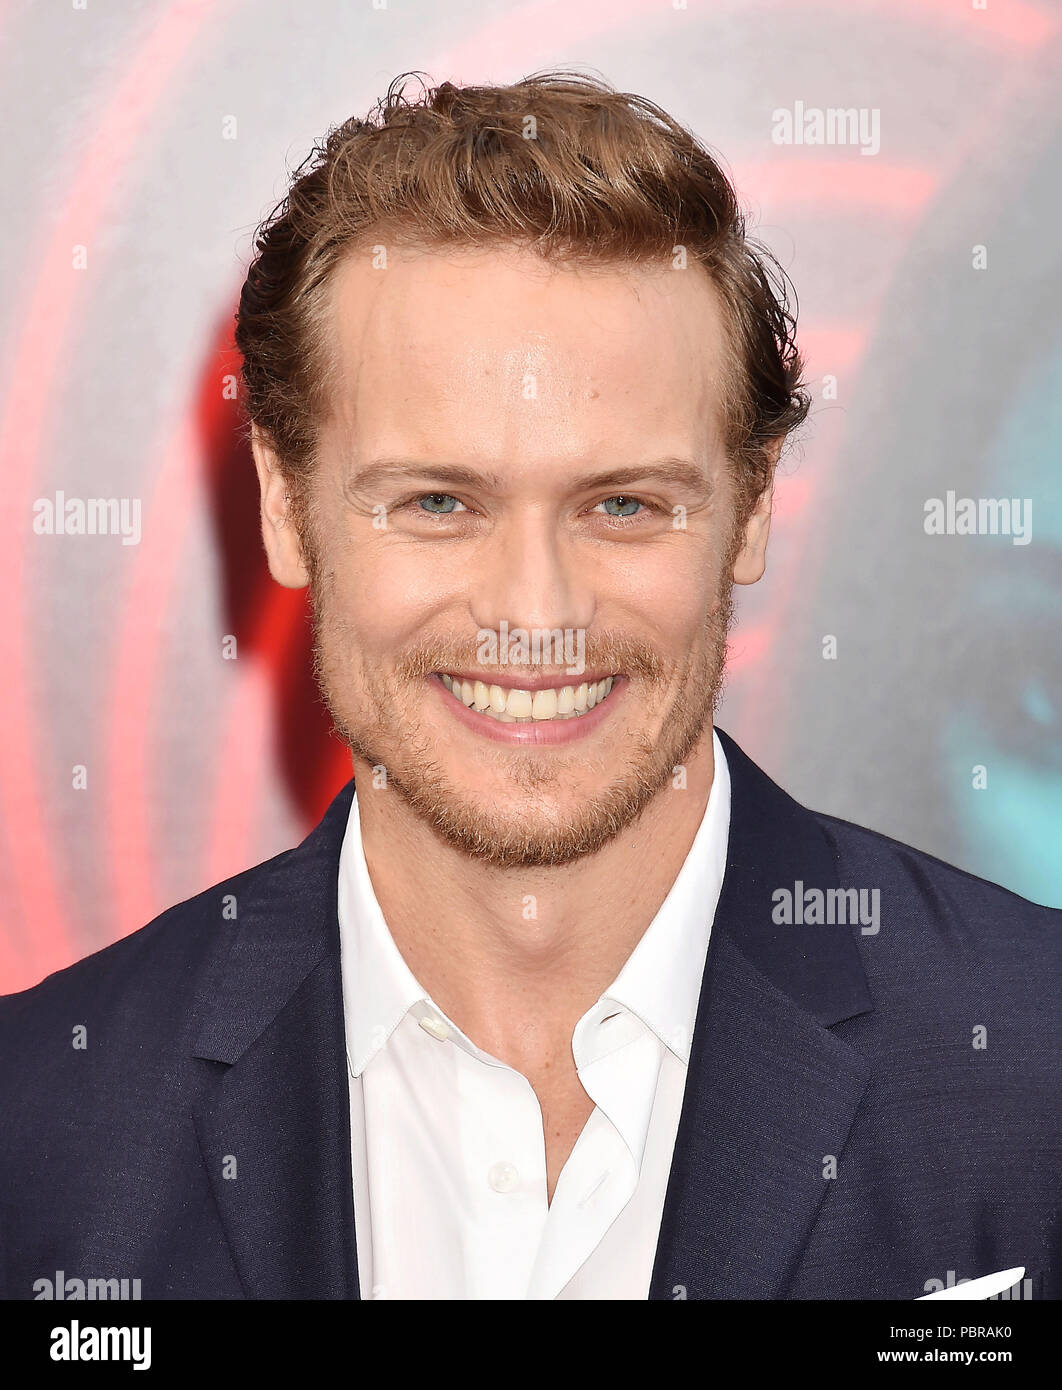 SAM HEUGHAN Scottish film actor at the premiere of